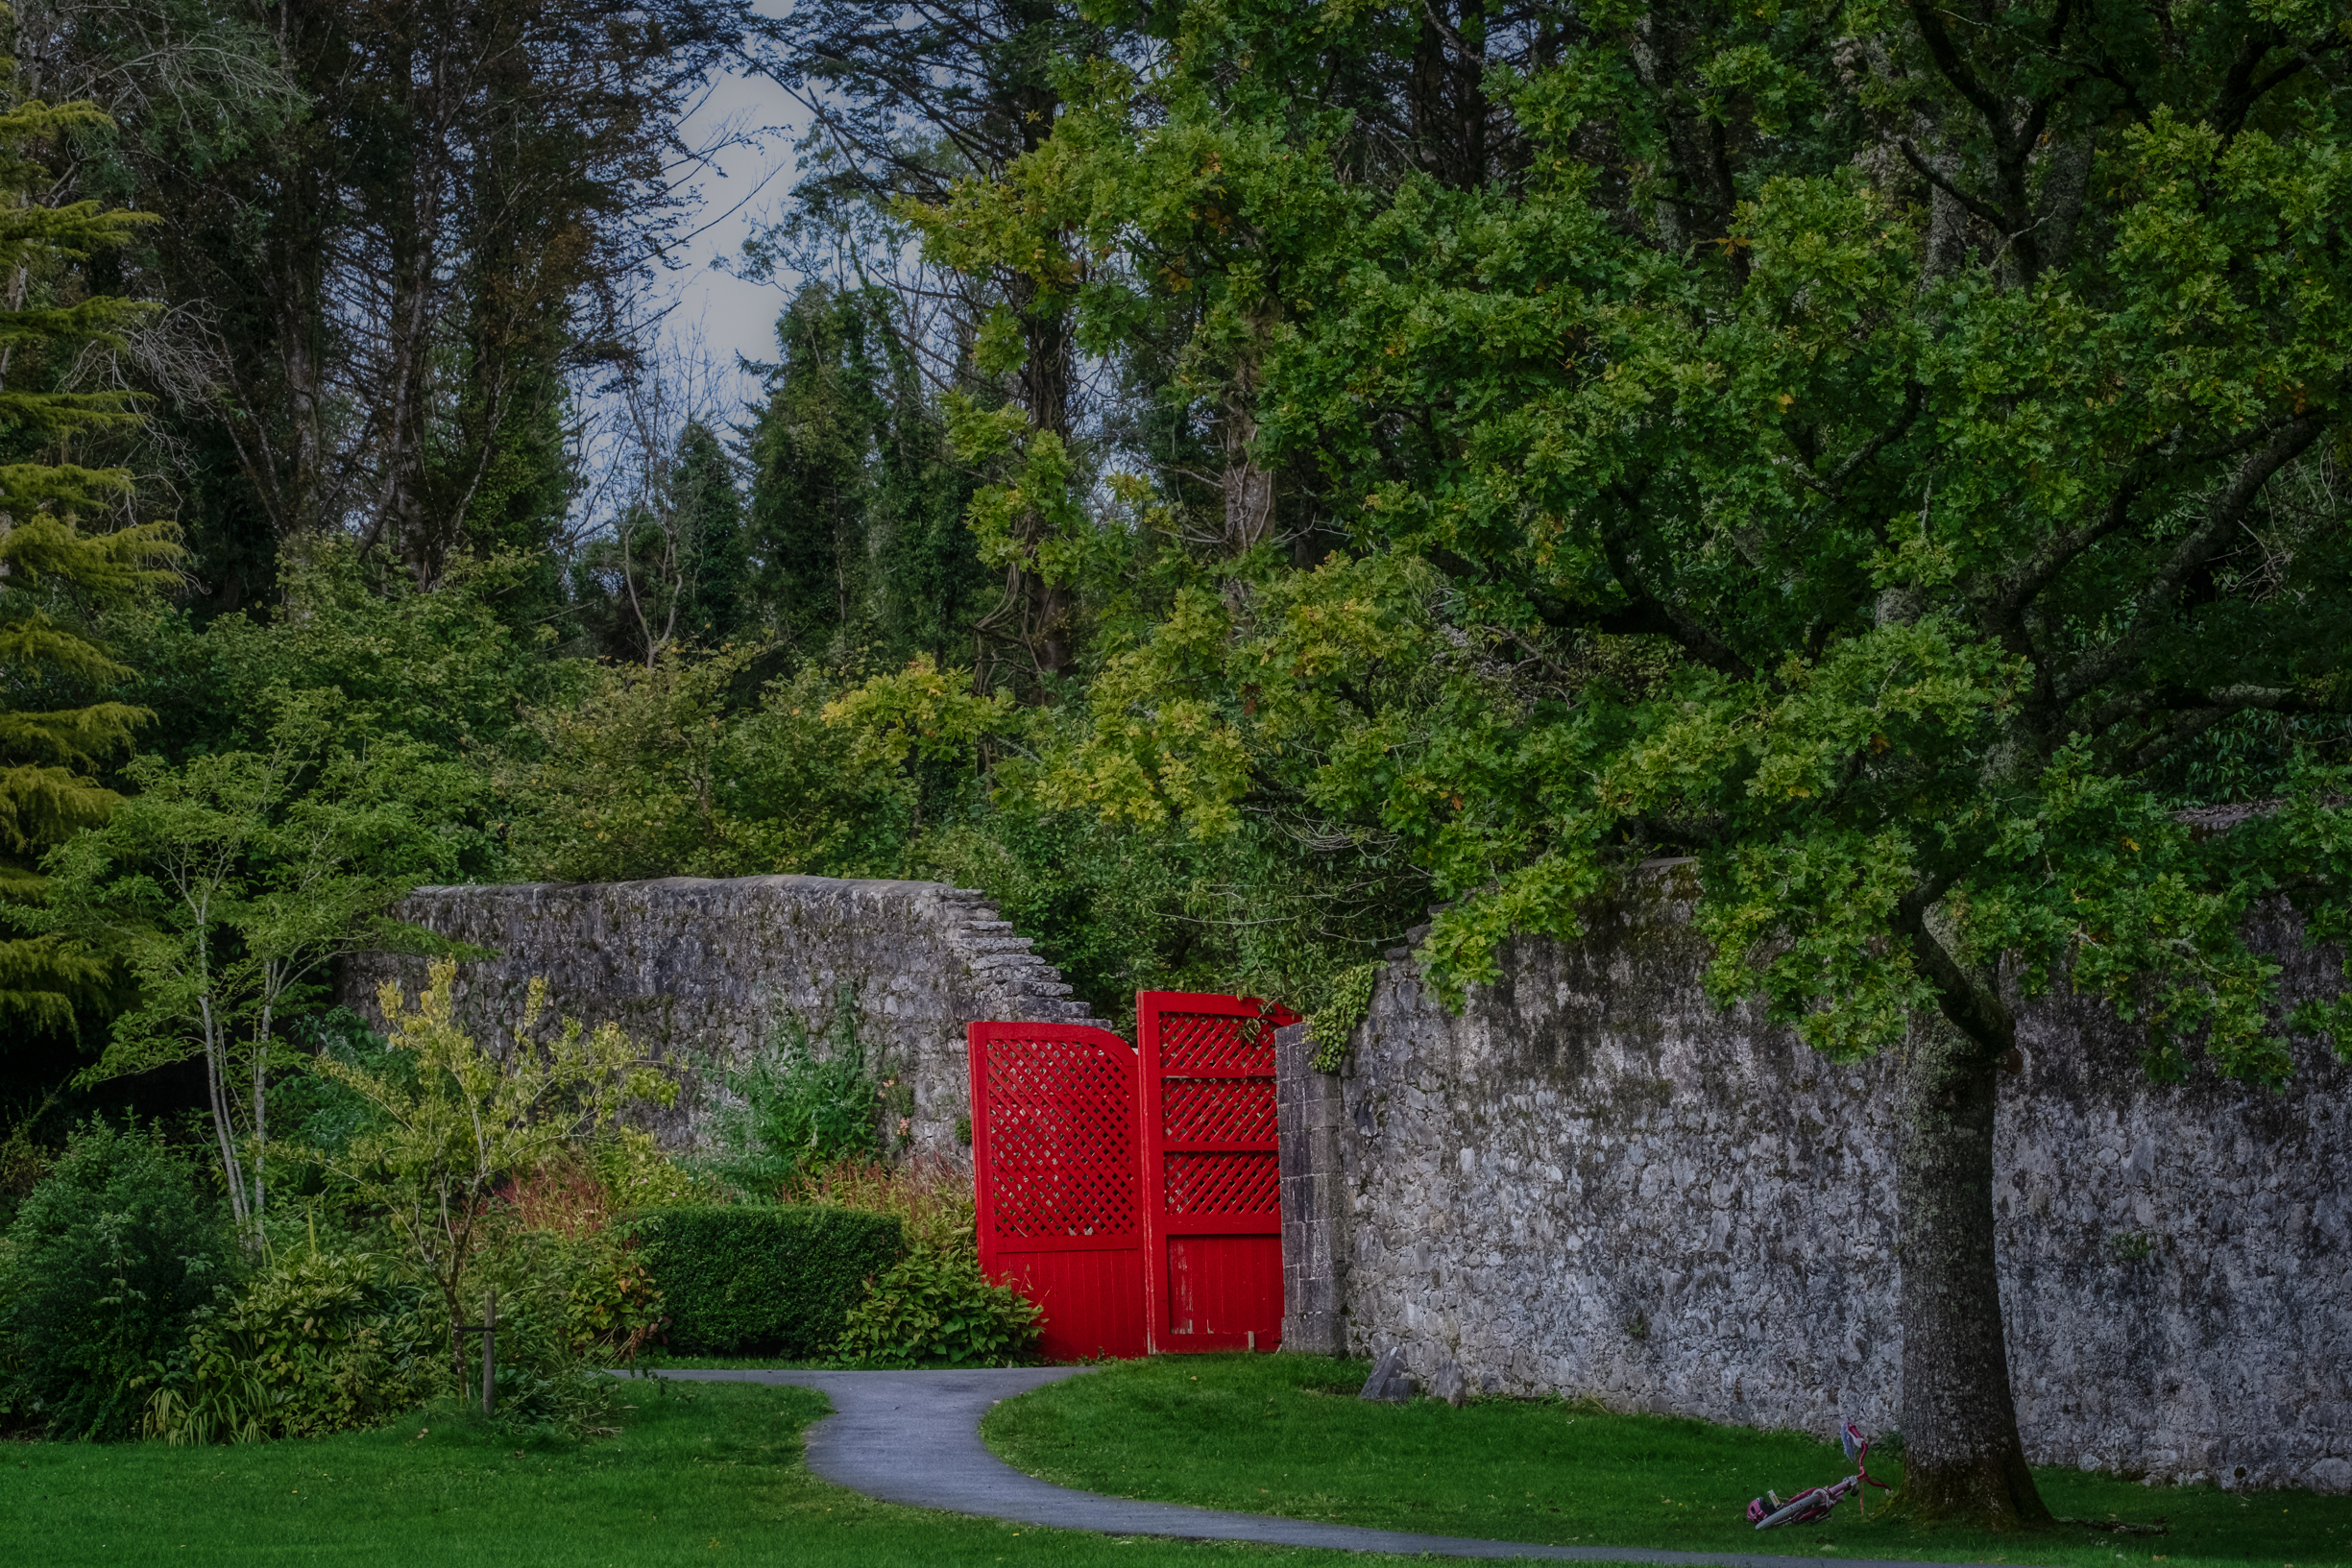 red gates at Coole Park, Gort